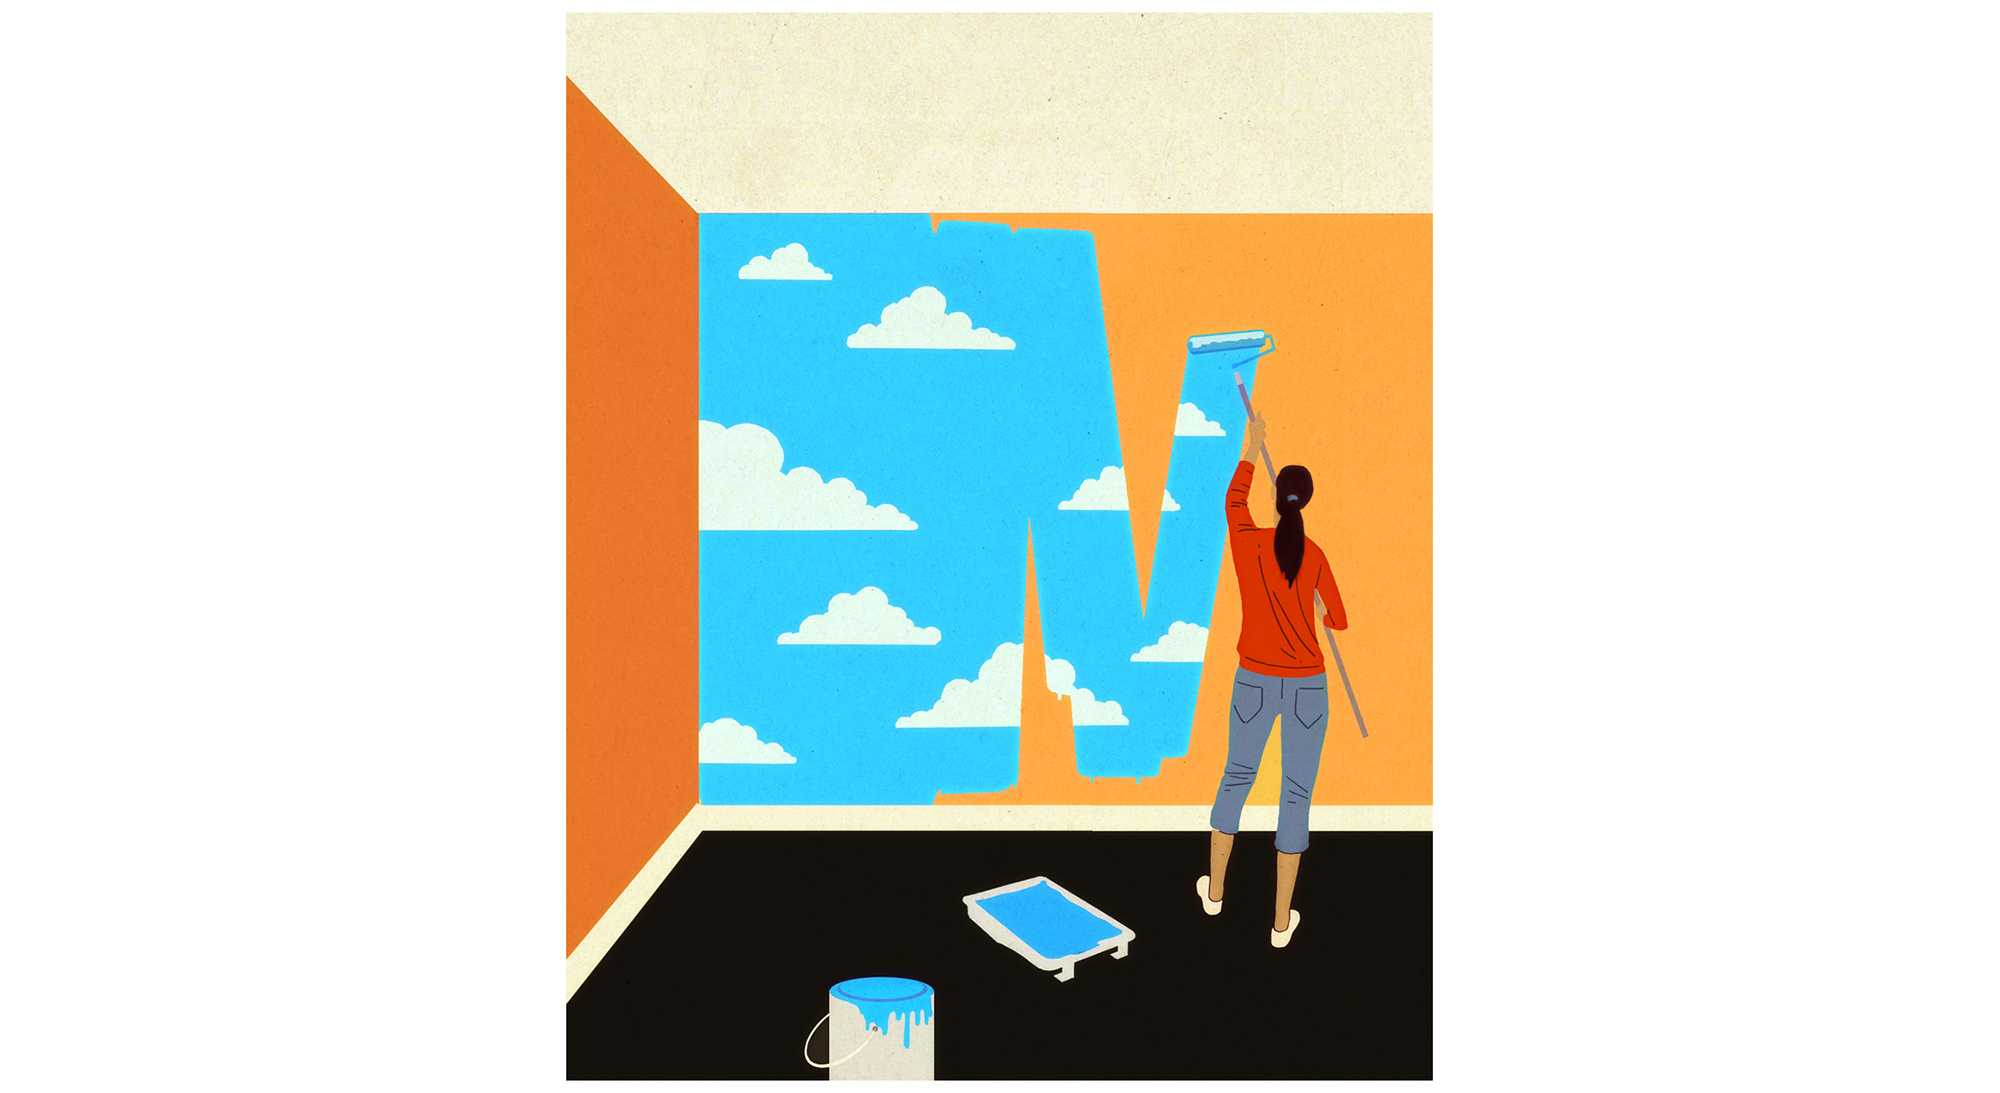 Illustration: woman painting clouds on wall